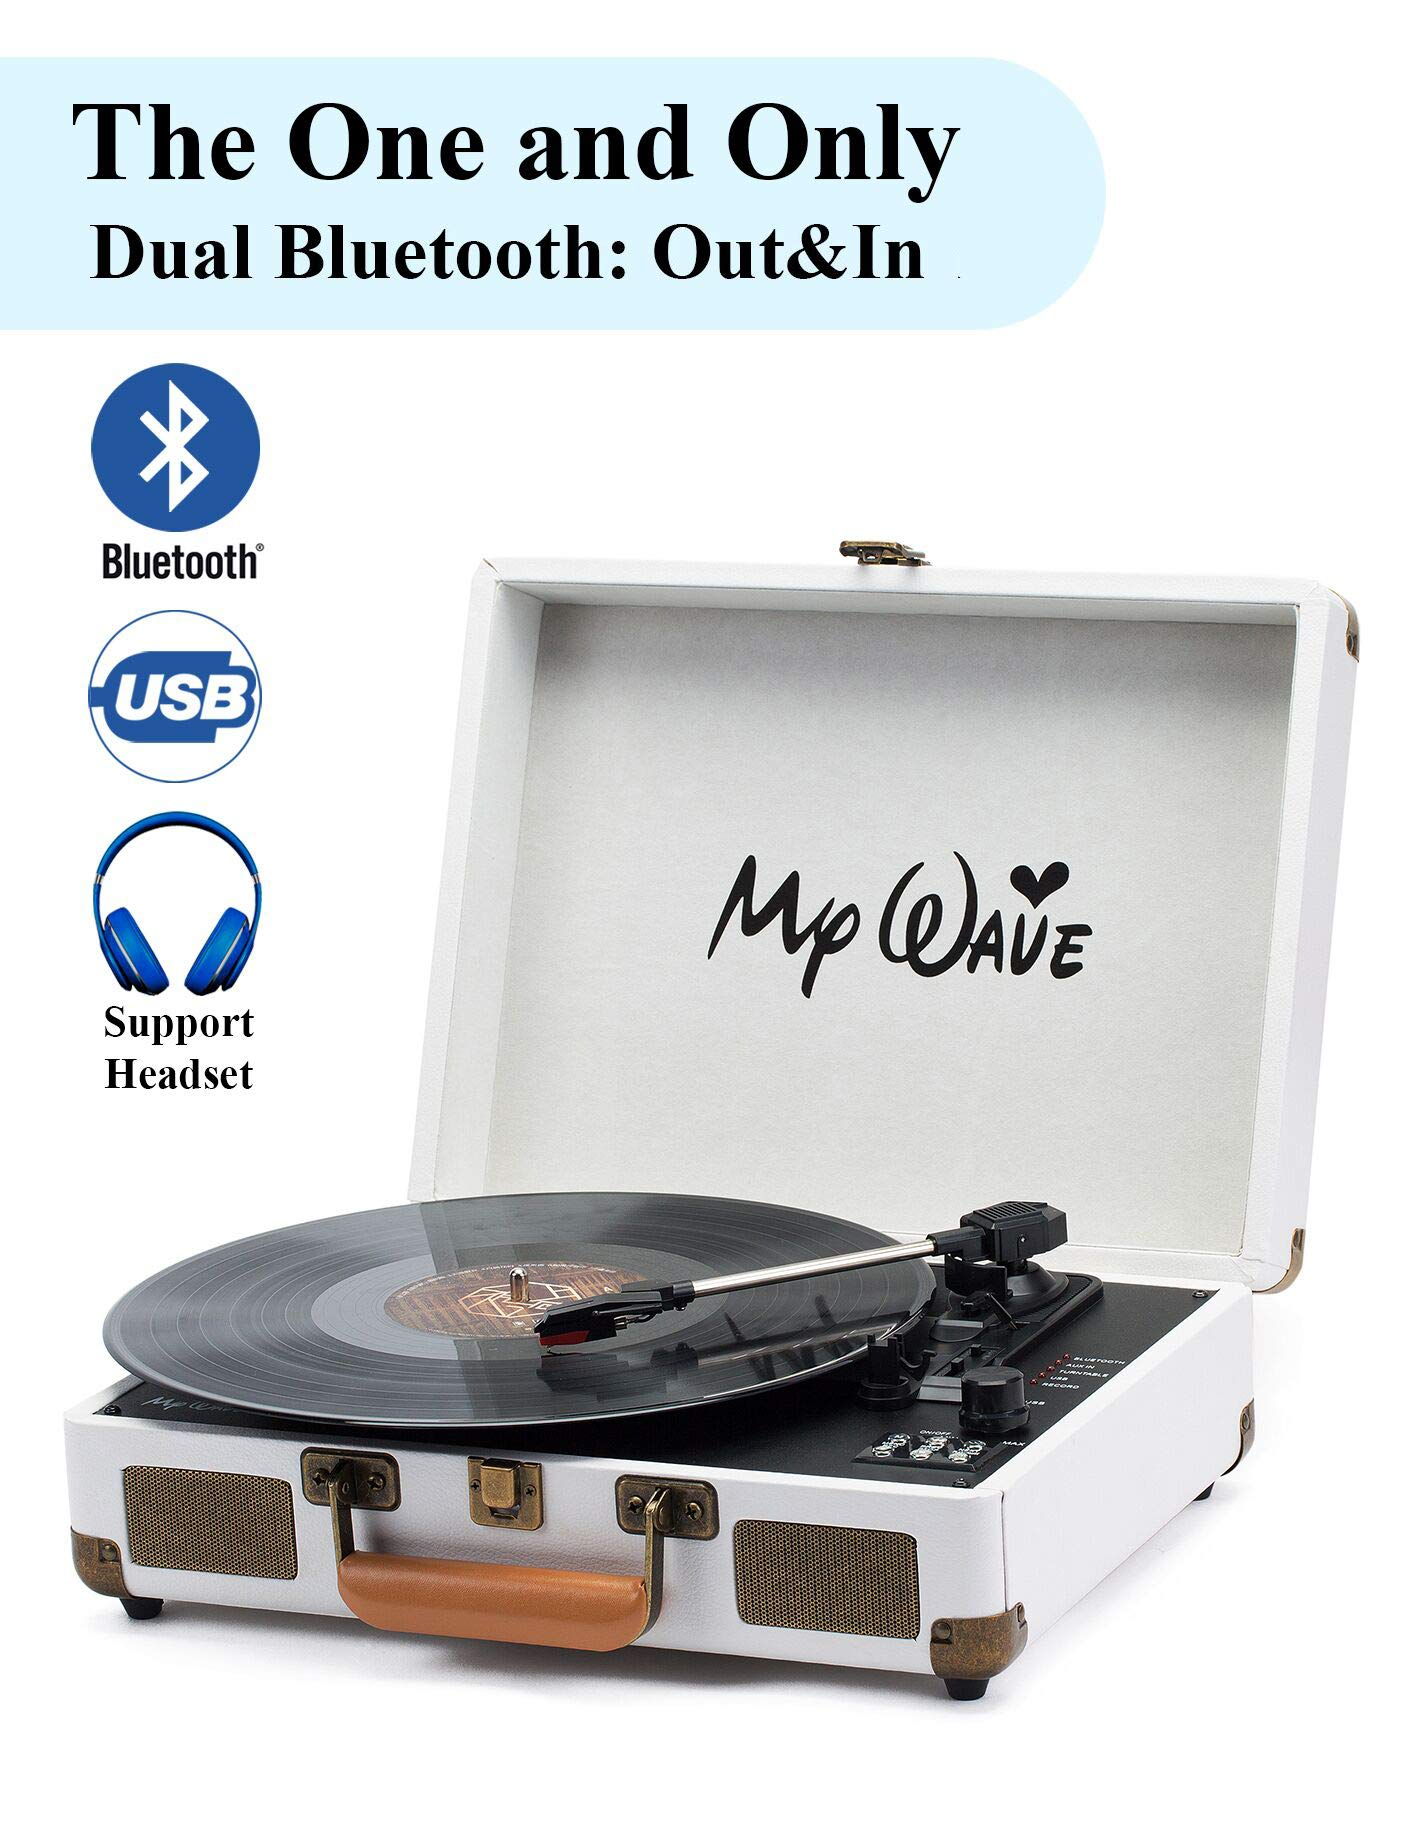 MyWave Bluetooth Wireless Turntable Portable Record Player with Built-in Stereo Speakers, 3-Speed,Vinyl-to-MP3 Recording,Both Bluetooth Transmit Out & Receive in,AUX in,RCA Out,Headphone (White-2)